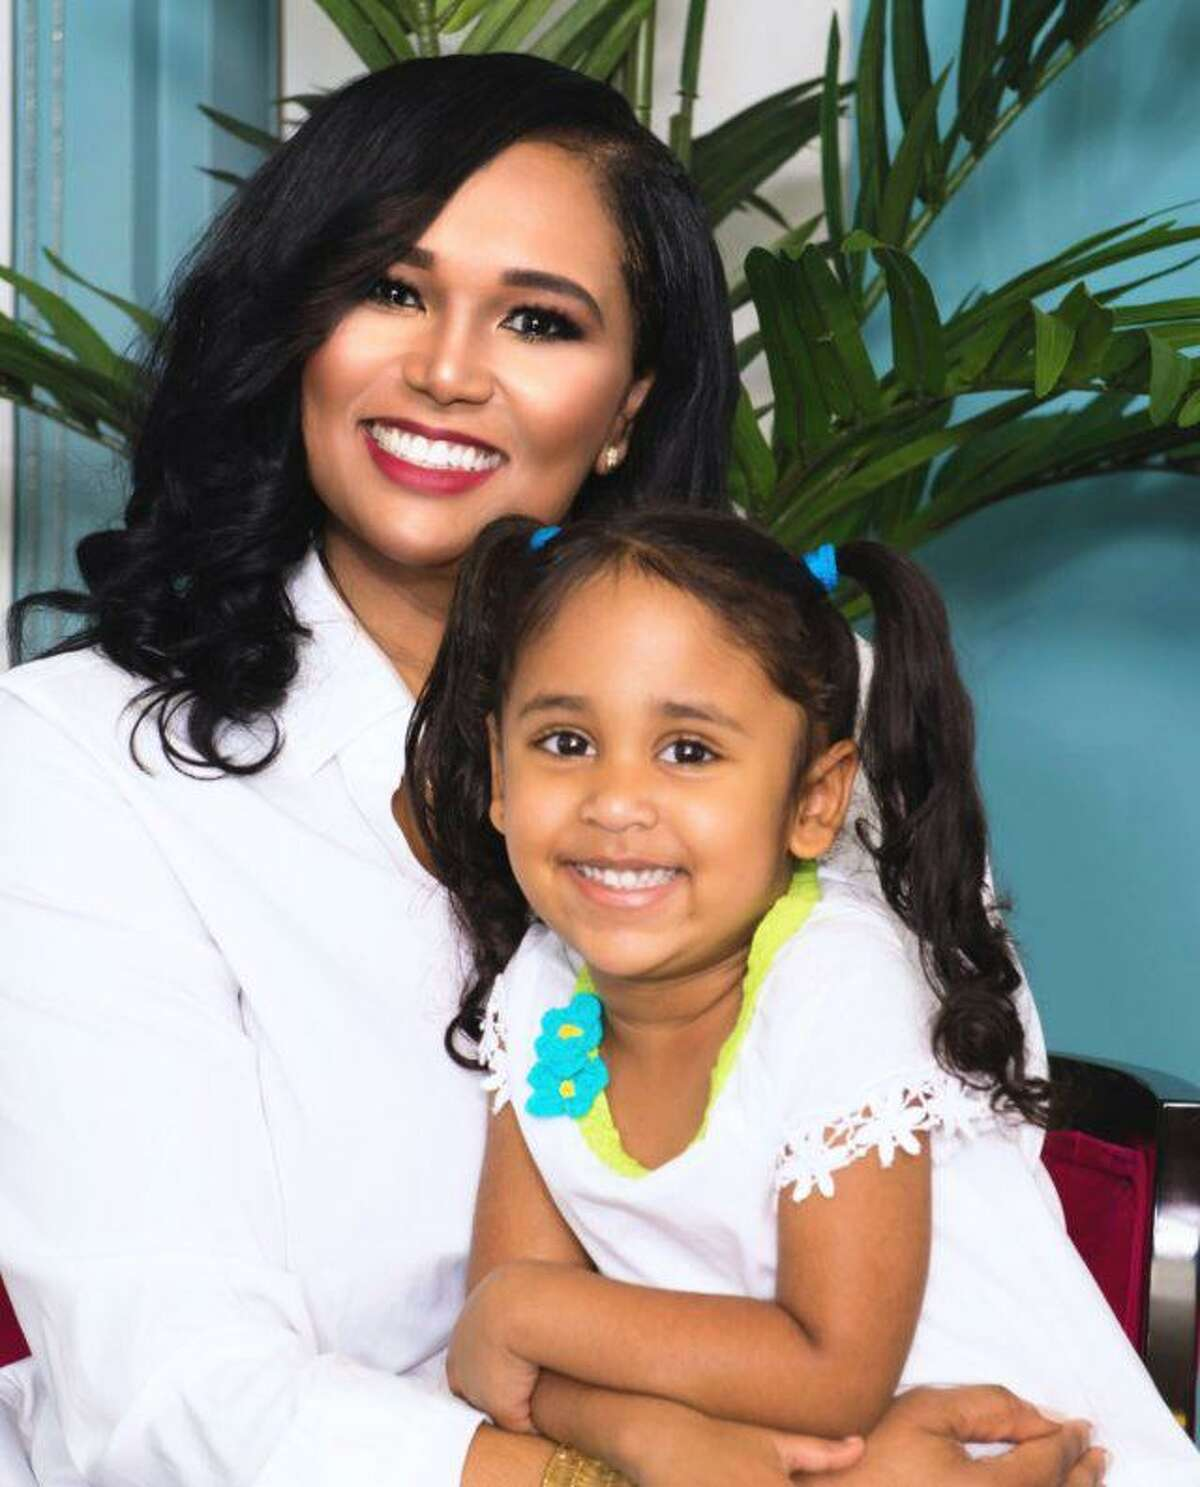 Rep. Shawn Thierry and her daughter, Klaire.